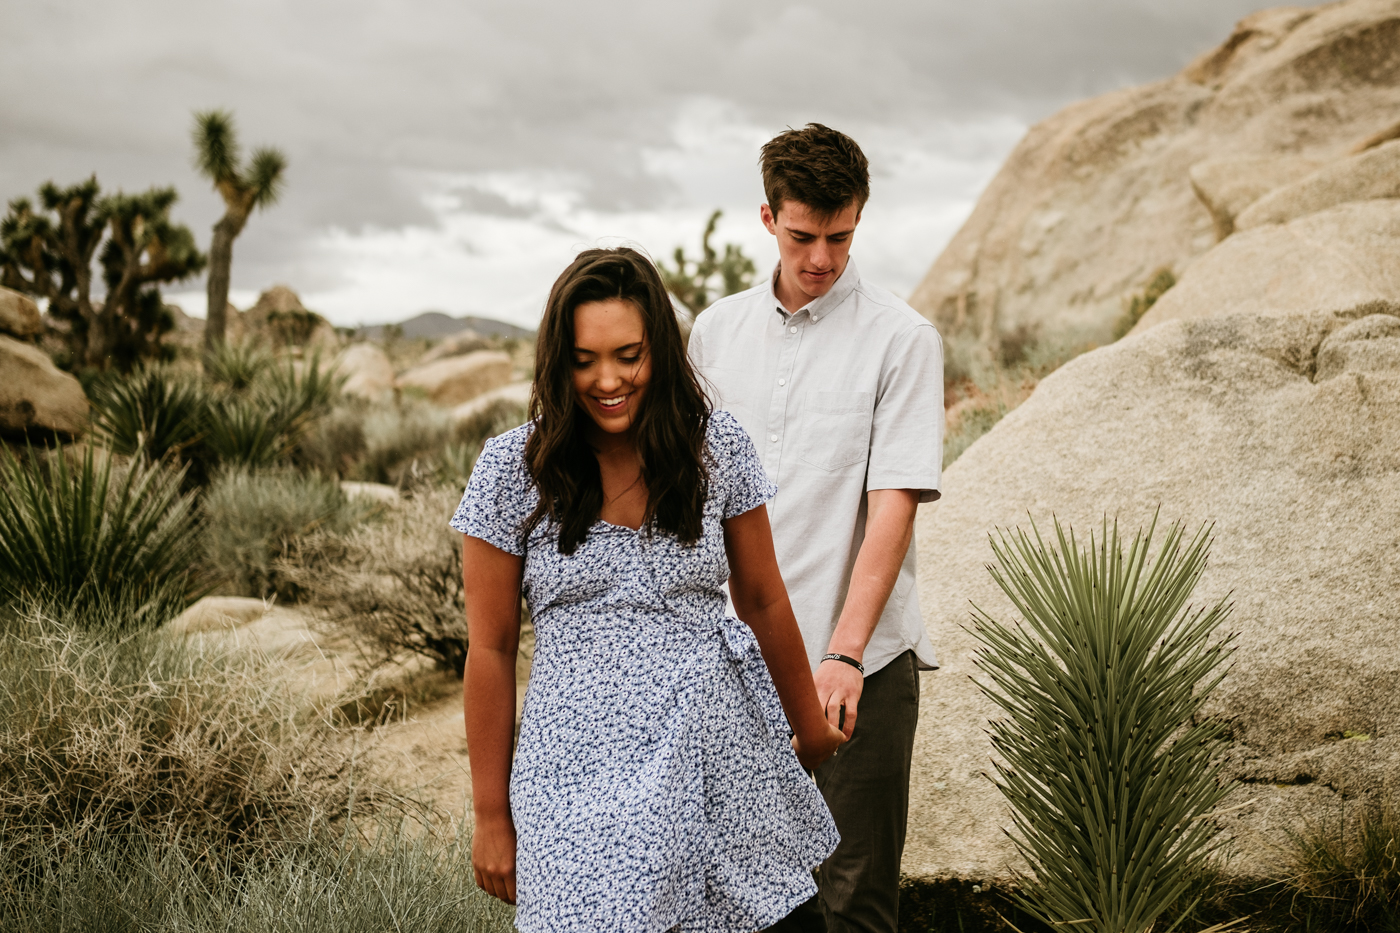 Baliey+Thomas.Engagement.JoshuaTree©mileswittboyer.com2018-23.jpg